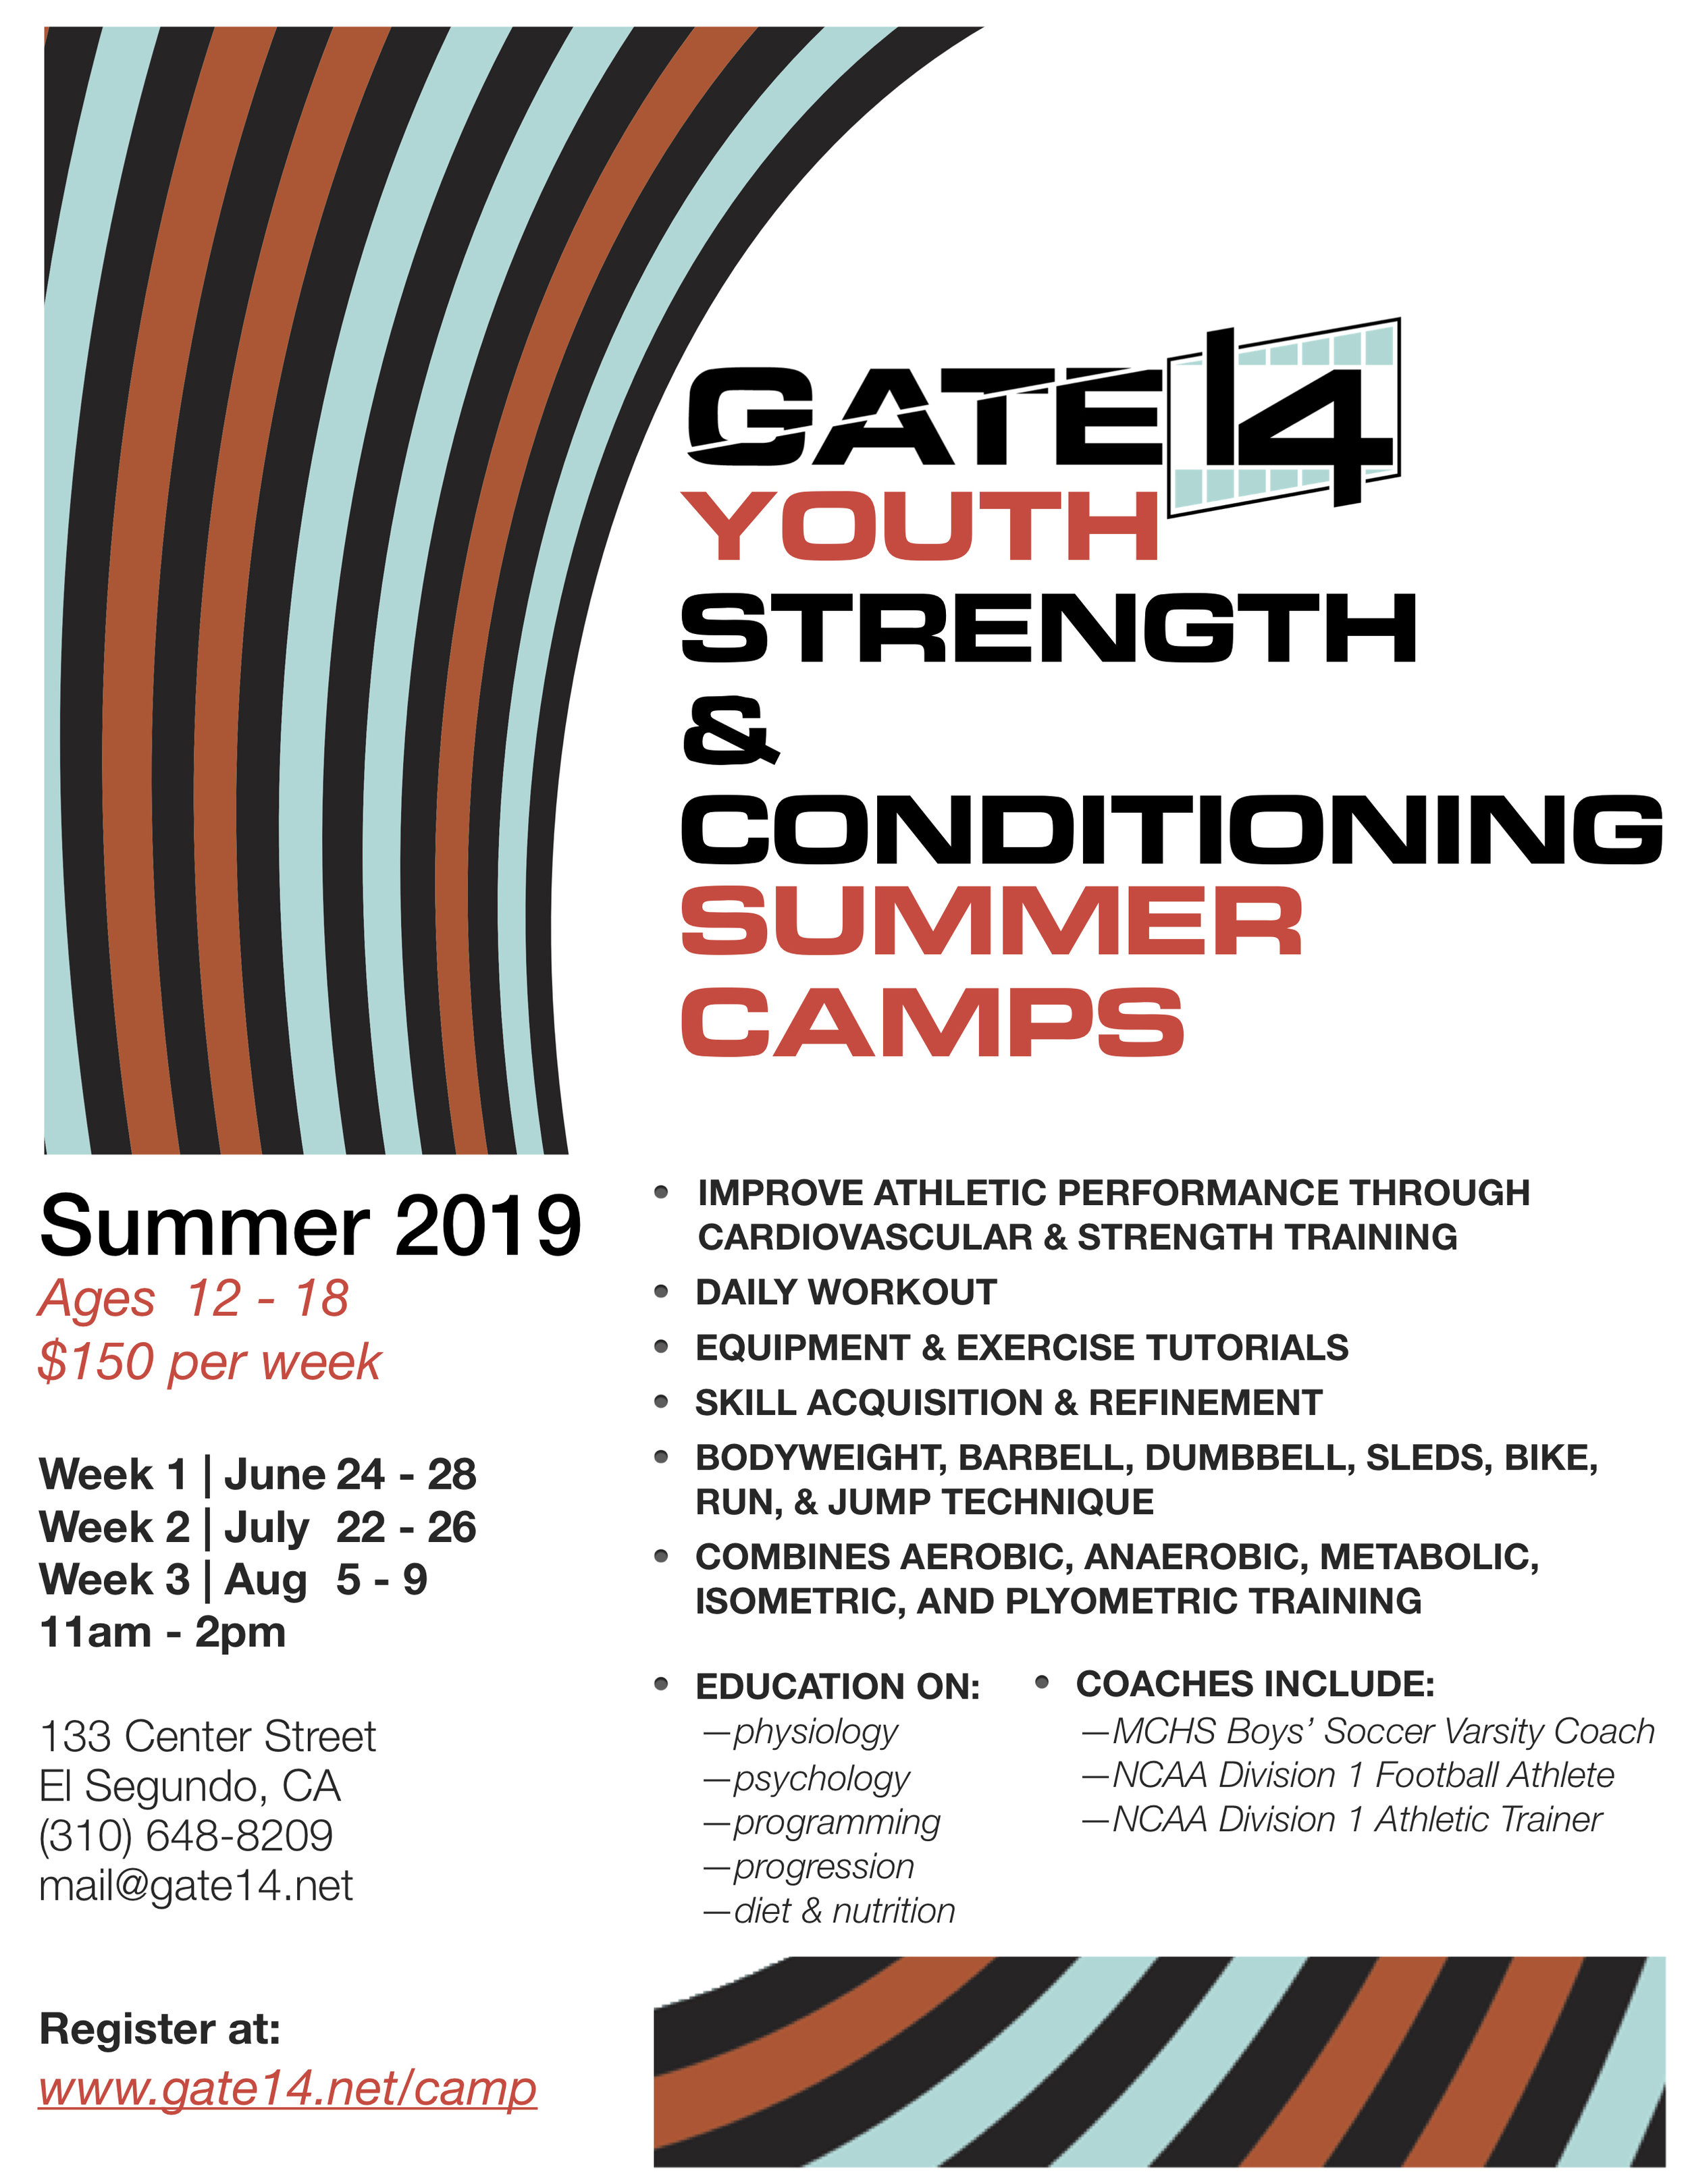 Youth Strength & Conditioning Summer Camp — Gate 14 Fitness